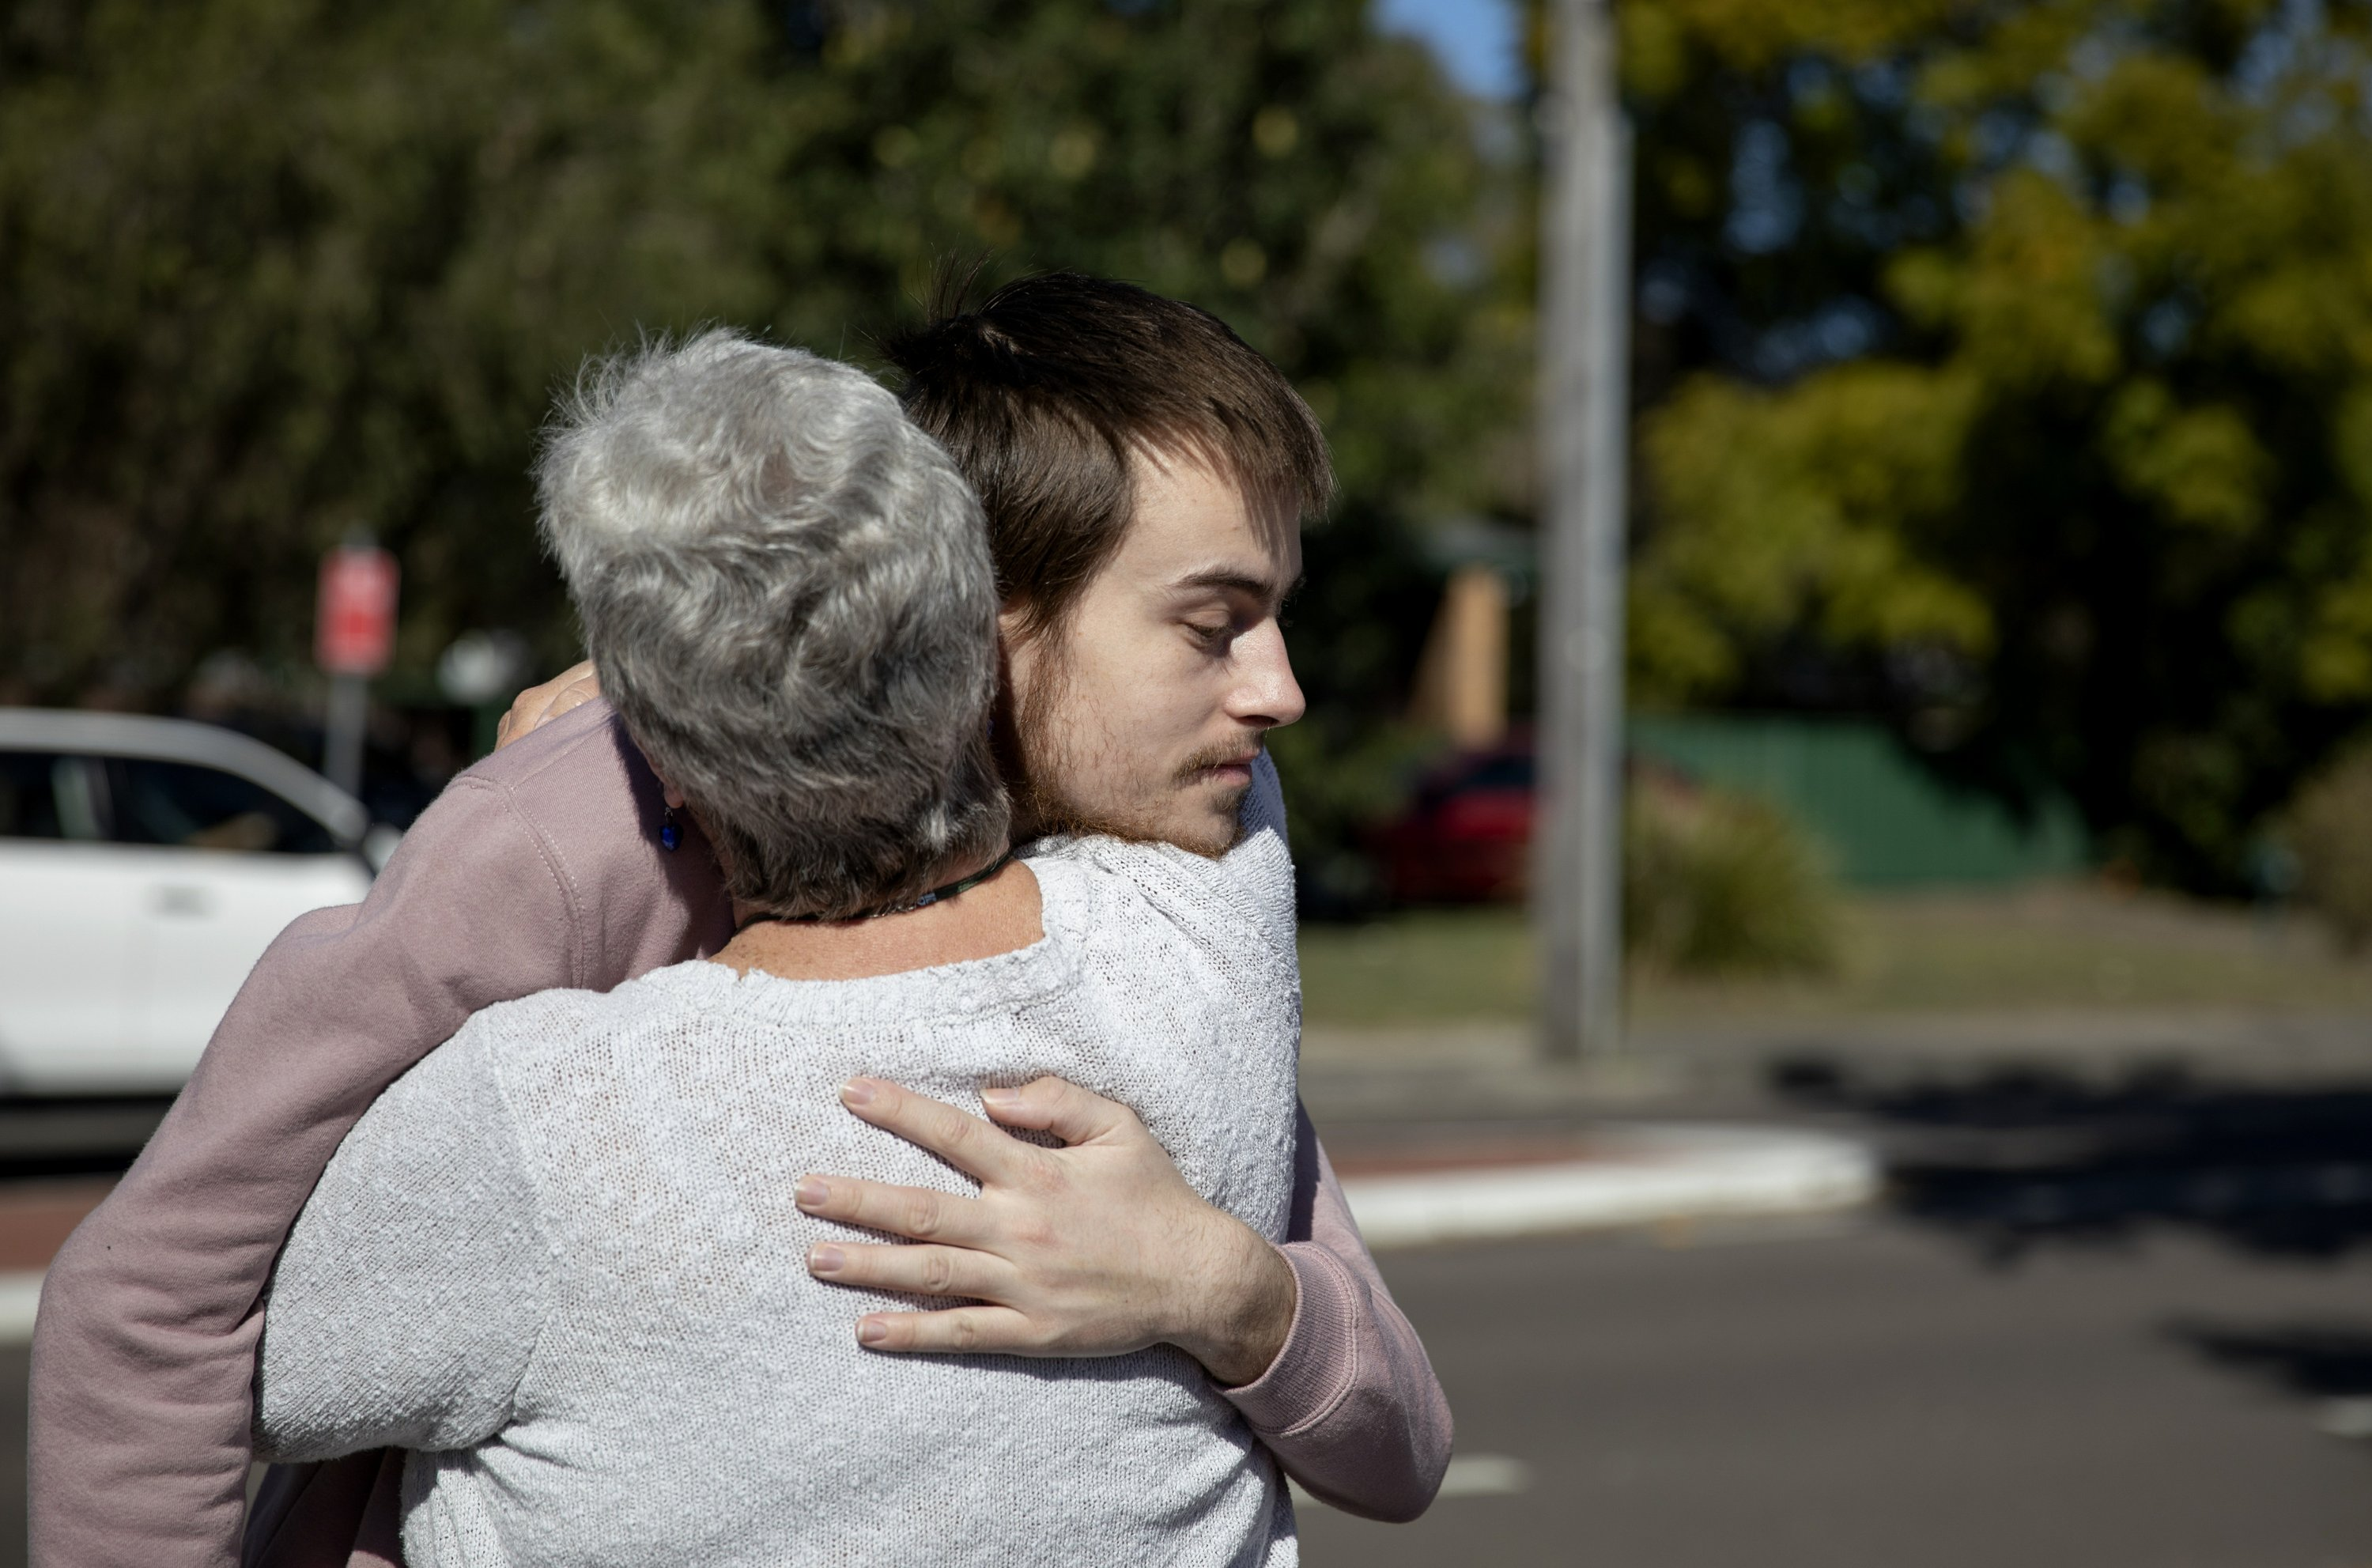 Son's opioid addiction subjects mom to goodbye after goodbye